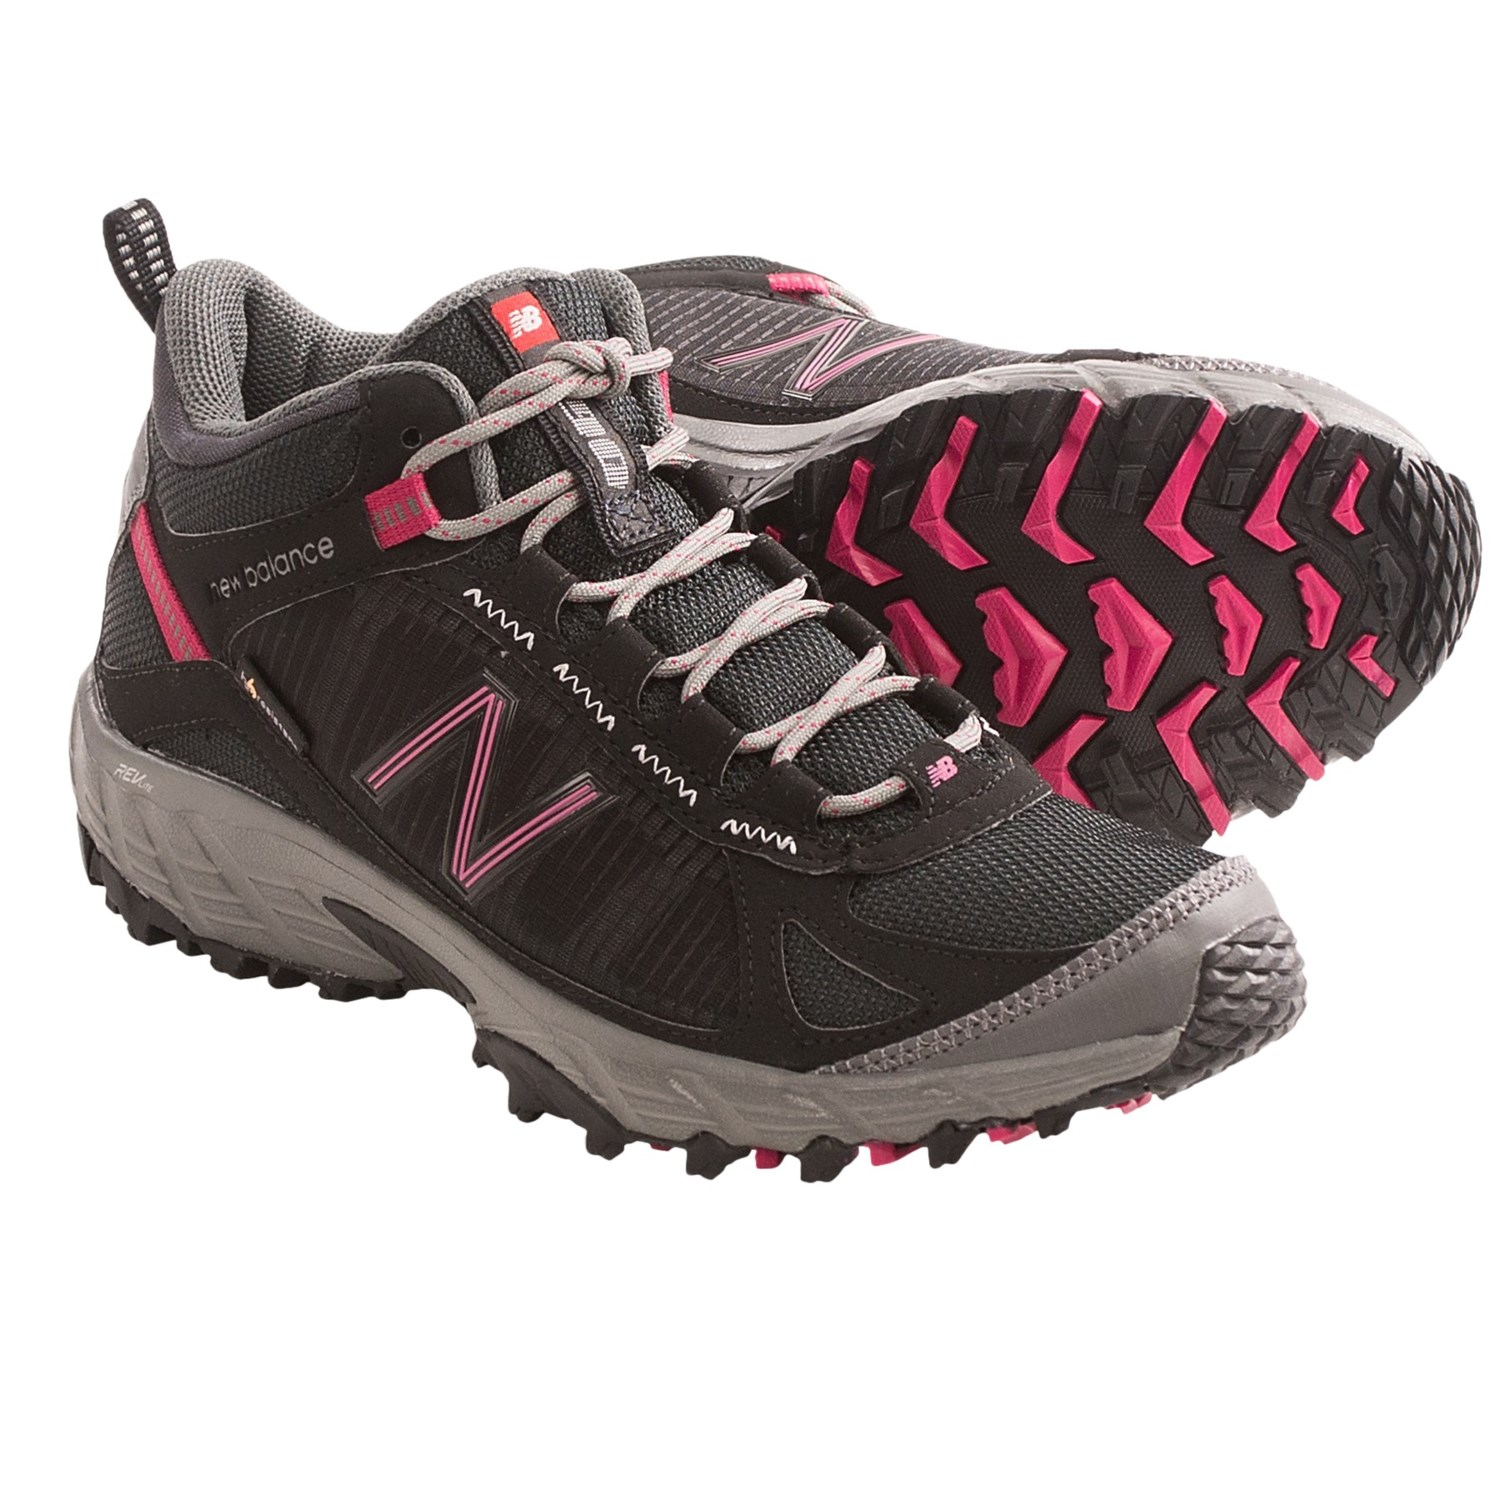 Lastest I Recently Bought Some New Balance Hiking Boots  The Rainier 1500s  And So Far Im Very Happy With My Purchase Such Praise Does Not Come Lightly From Me I Have A Hard Time Finding Boots That Fit My Wide And Apparently Abnormally